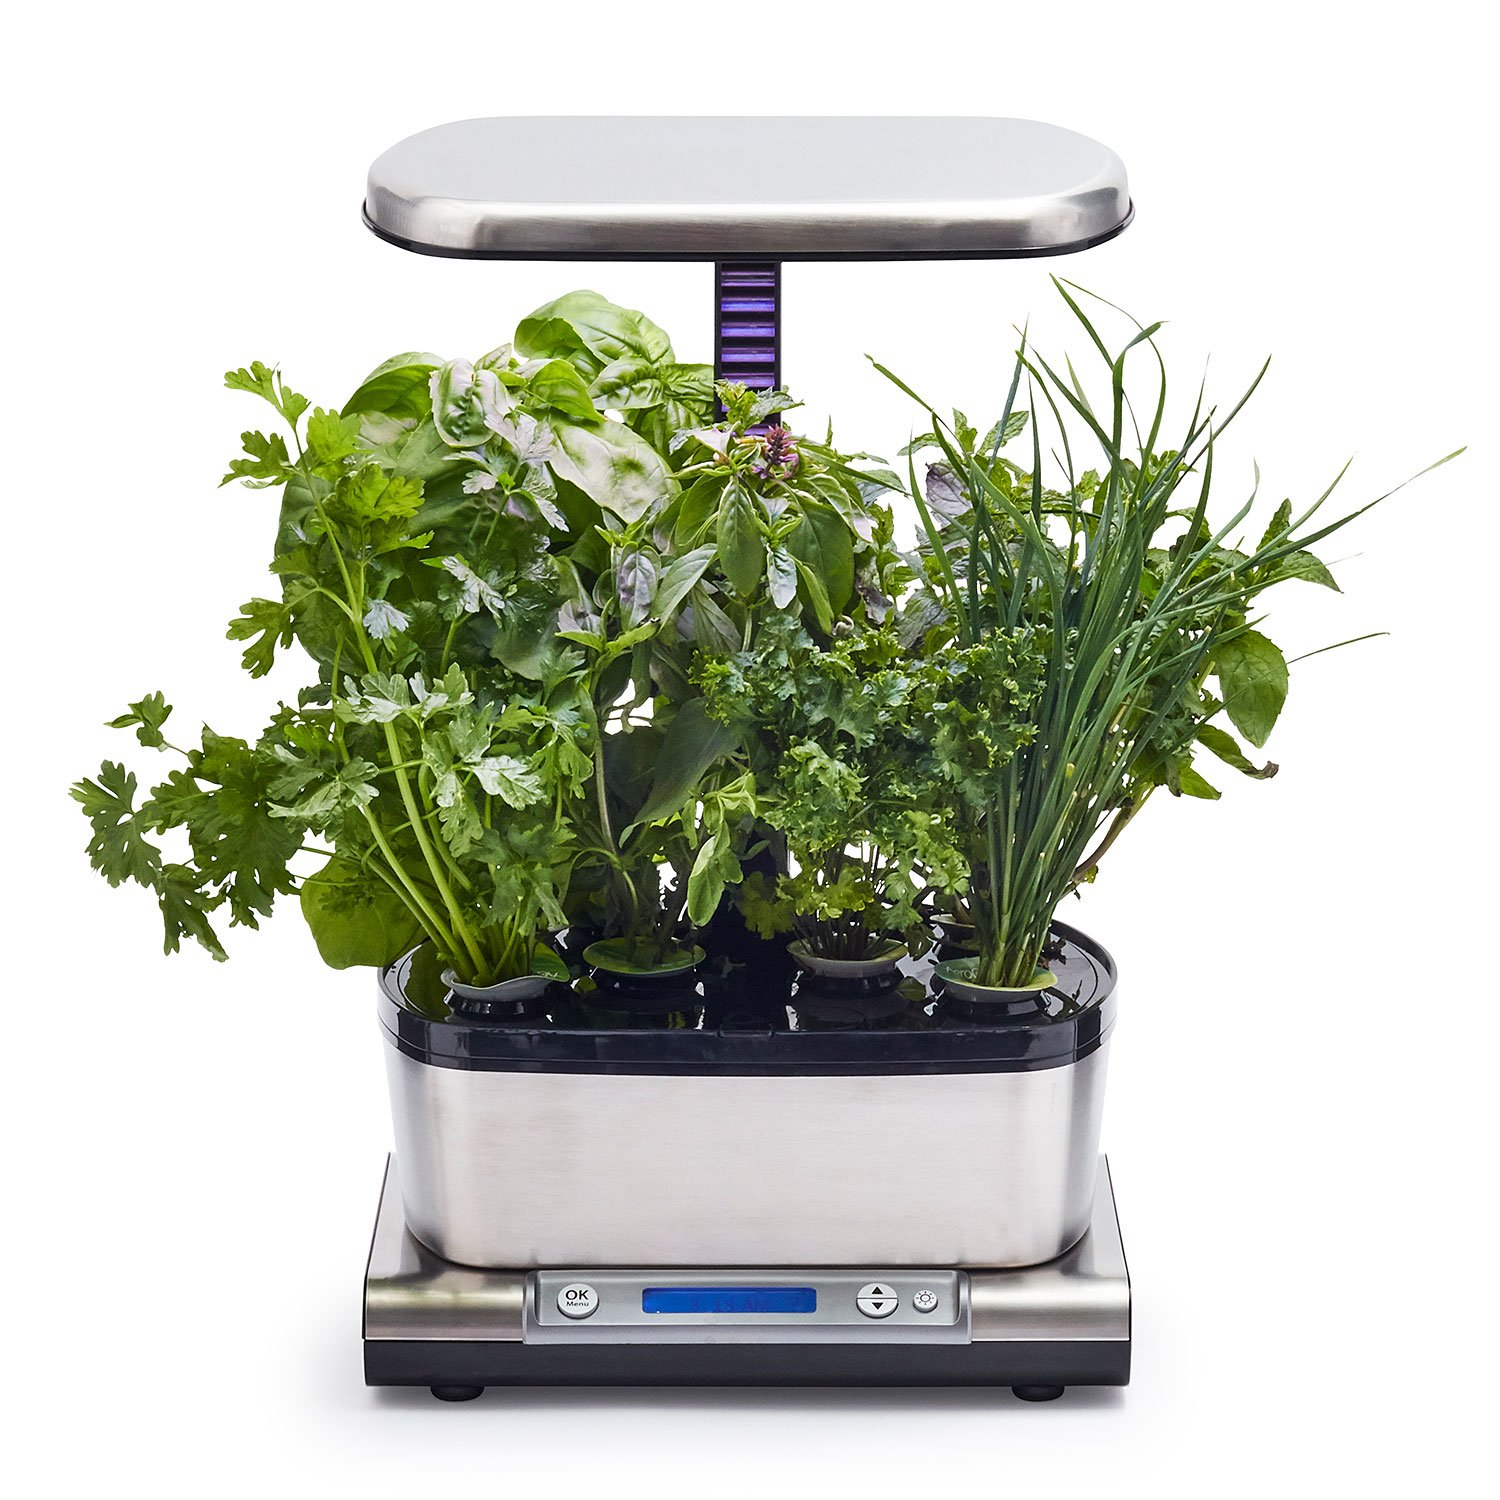 AeroGarden Harvest Elite WiFi with Gourmet Herbs Seed Pod Kit, Stainless Steel by AeroGrow